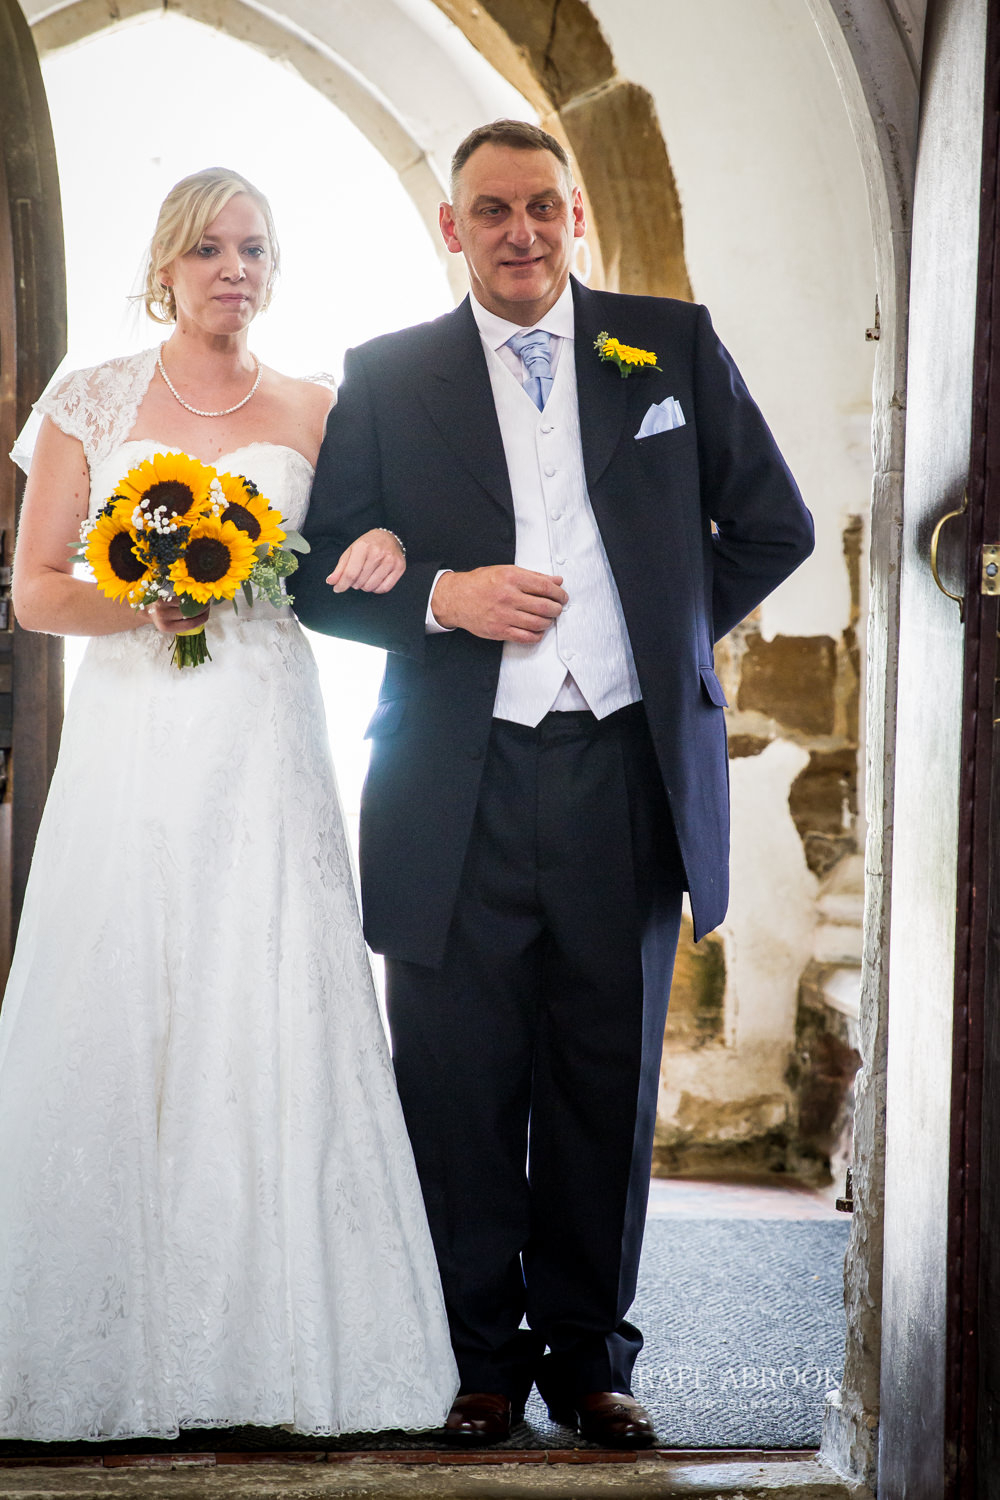 minstrel court wedding royston cambridge hertfordshire wedding photographer-1119.jpg